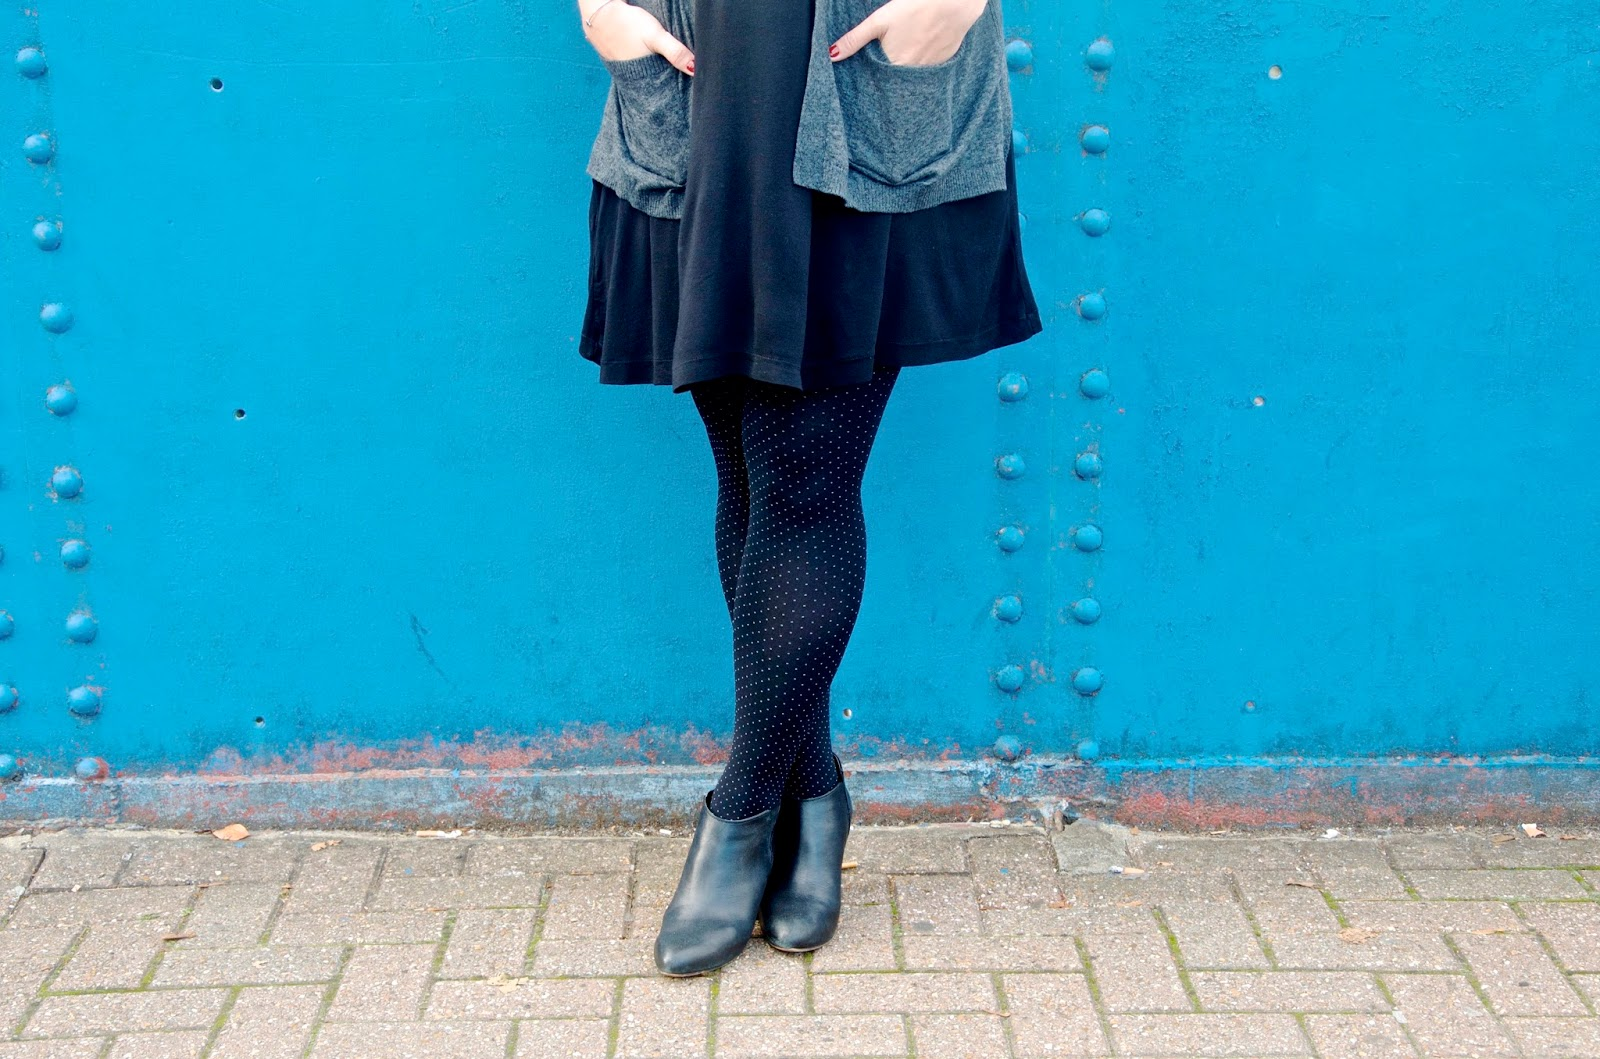 Short black dress, polka dot tights, black shoes, grey cardigan, blue wall